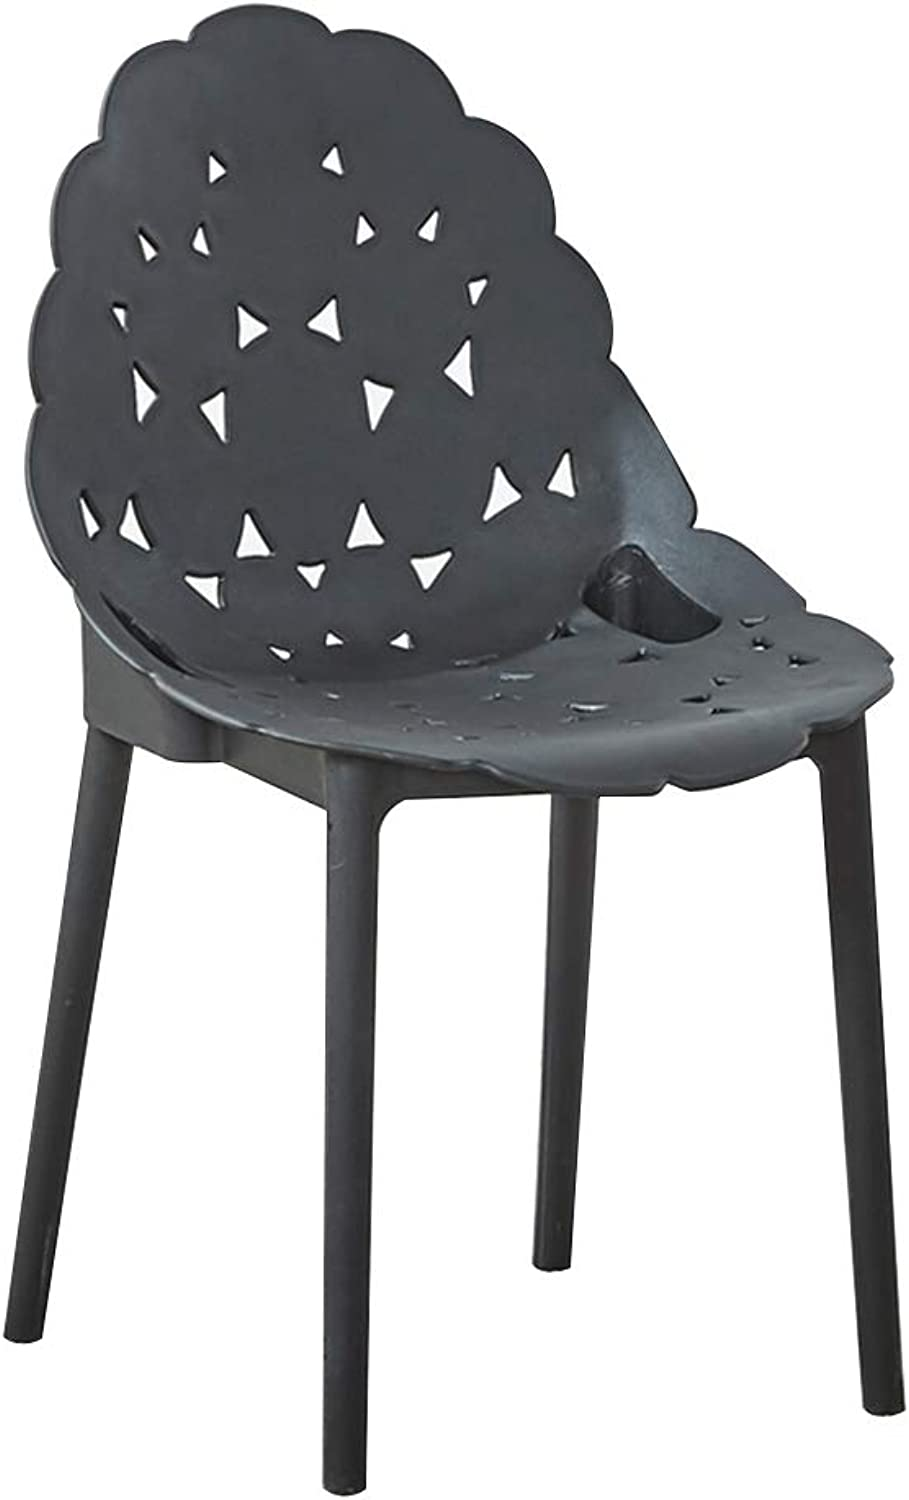 Chair Chair, Cave Chair One-Piece Design of Ergonomic Curve Household Balcony Rest Area Lounge Chair 5 colors (color   Black)